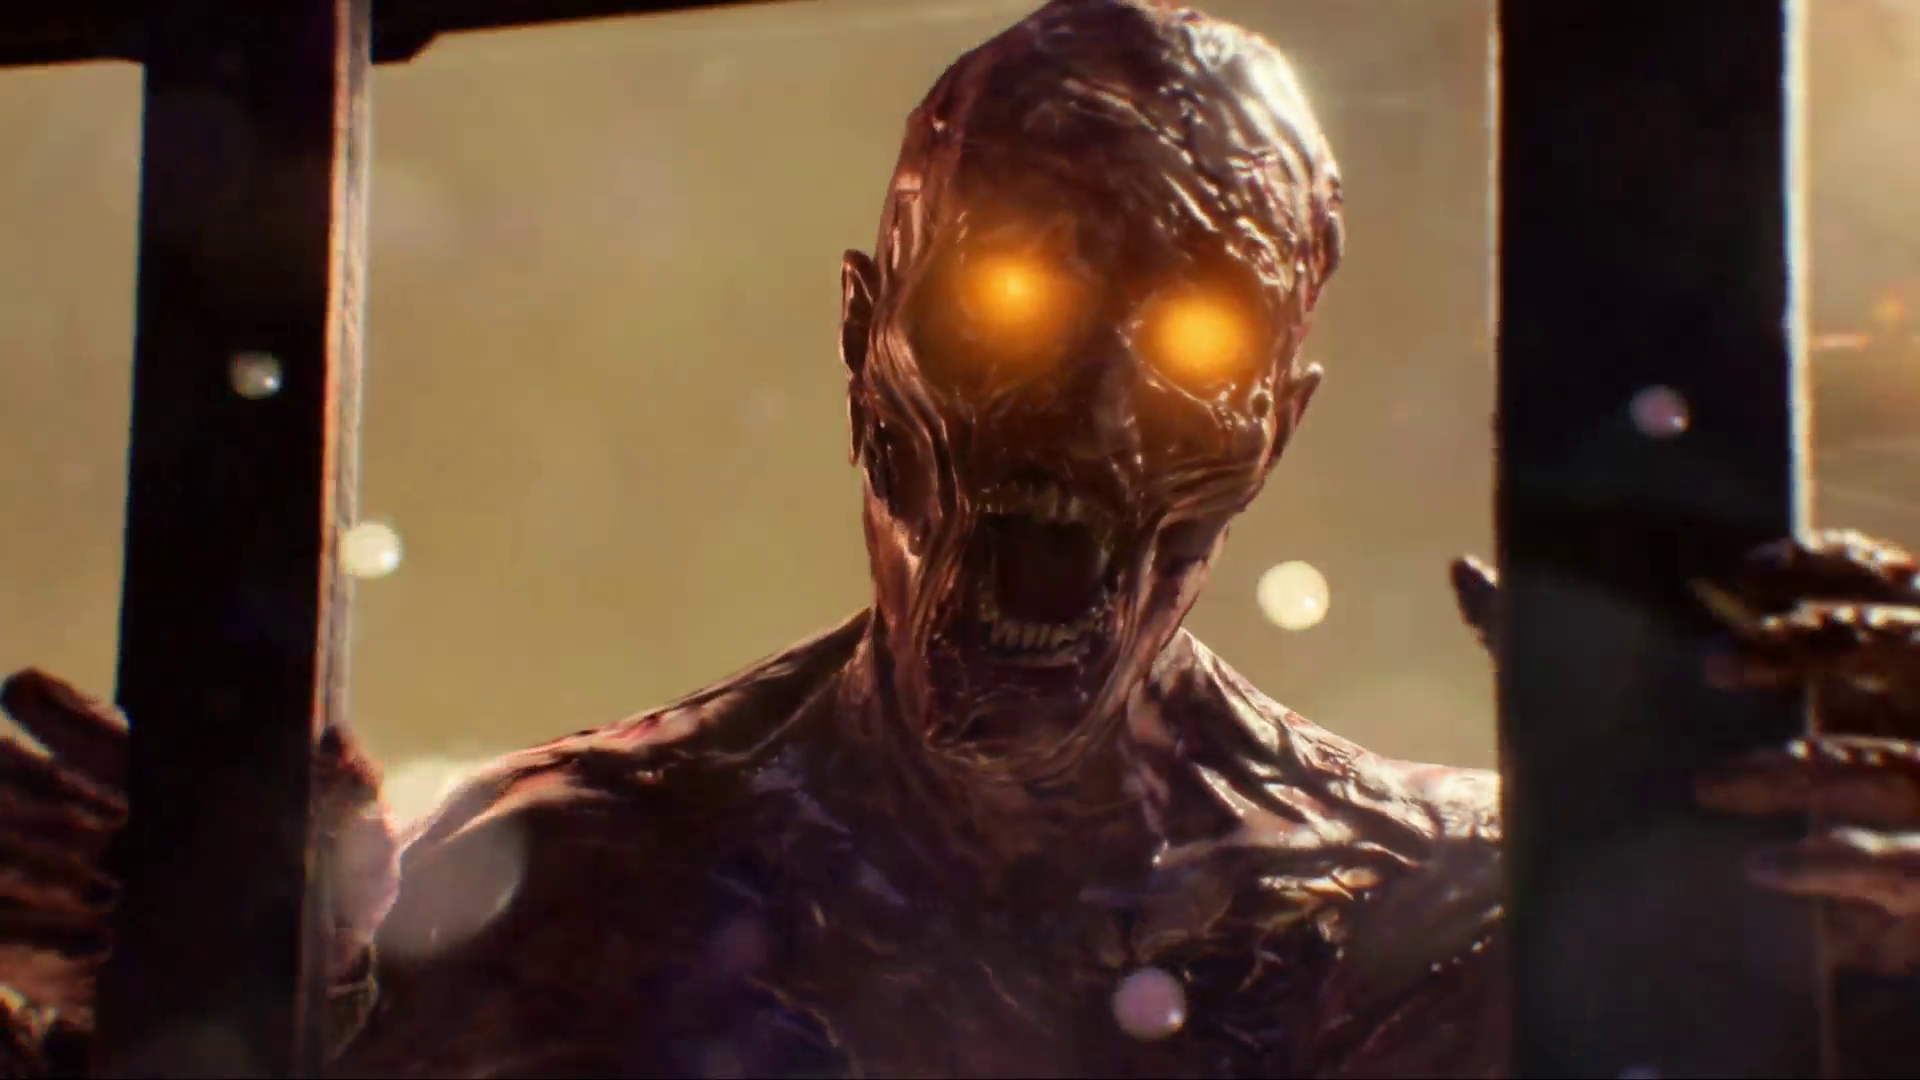 Report: Call of Duty's annual release wobbles, but Treyarch moves up to save it